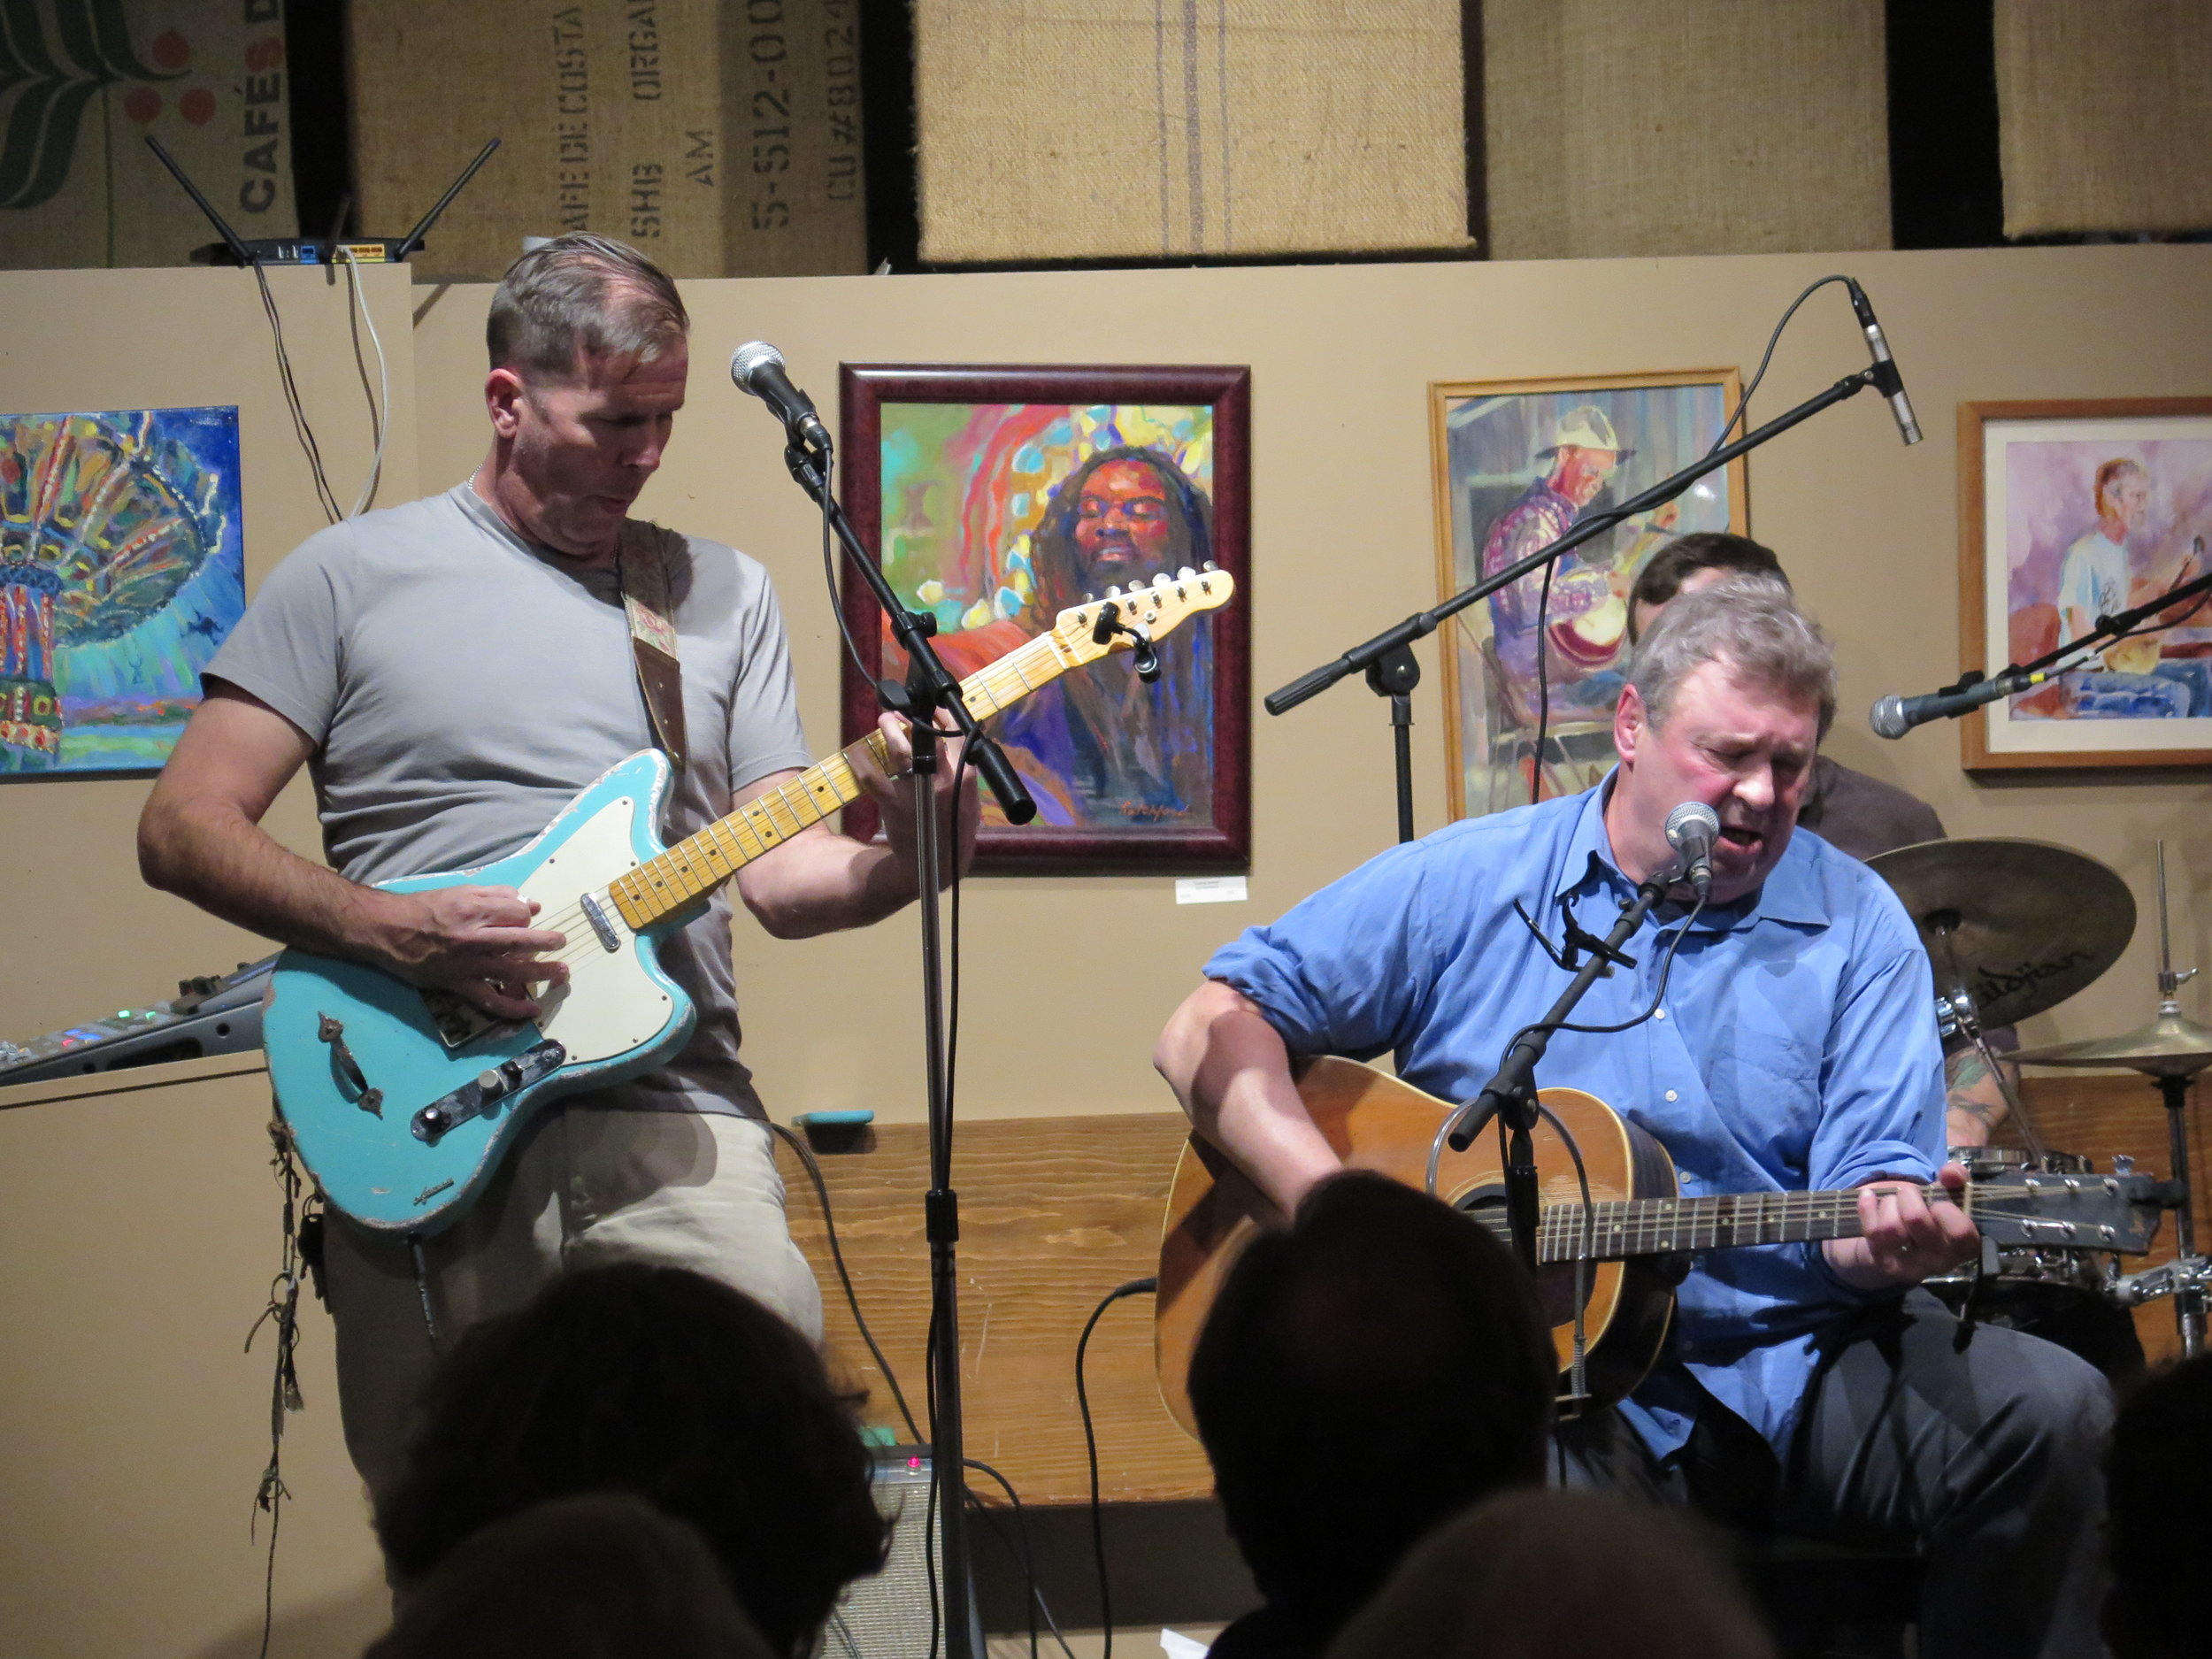 (L to R) Dale Shoemaker and David Childers in concert